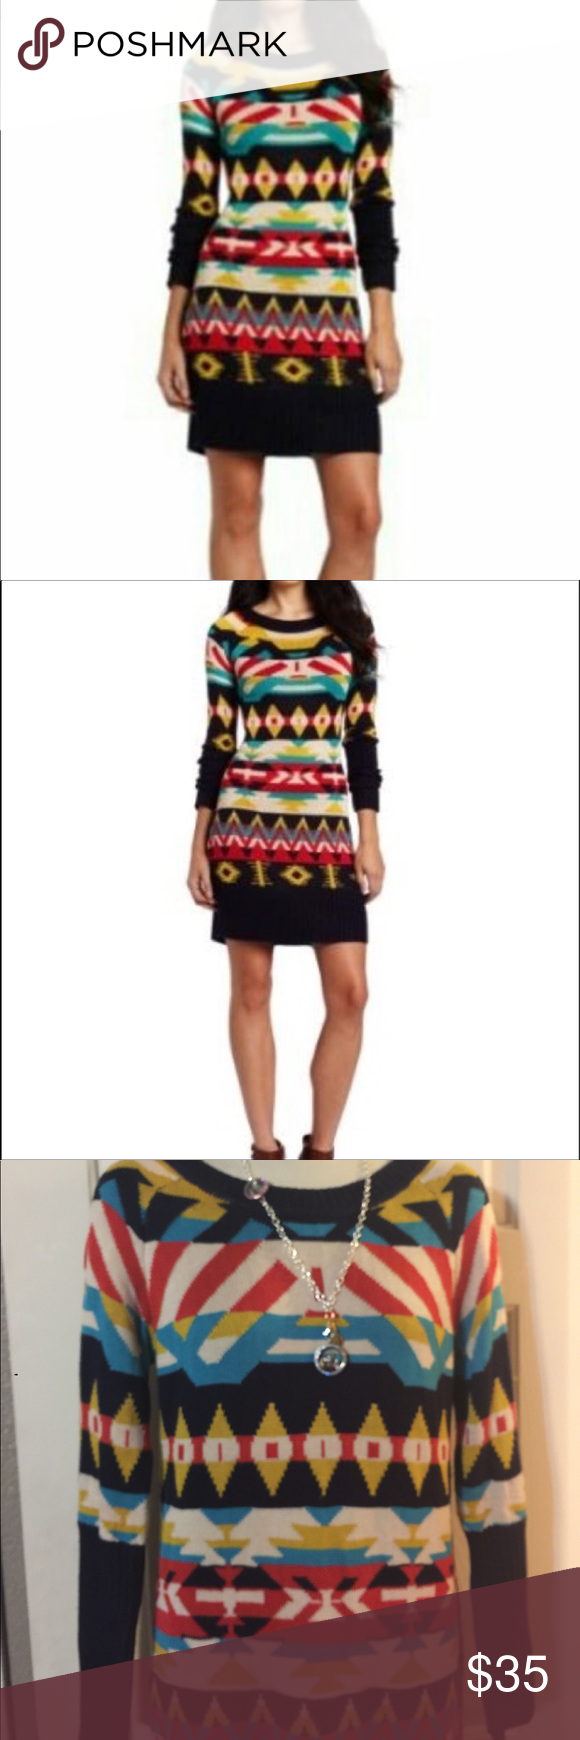 fa9fa95a5e Jessica Simpson Aztec Sweater Dress NWT Jessica Simpson Aztec long sleeve sweater  dress